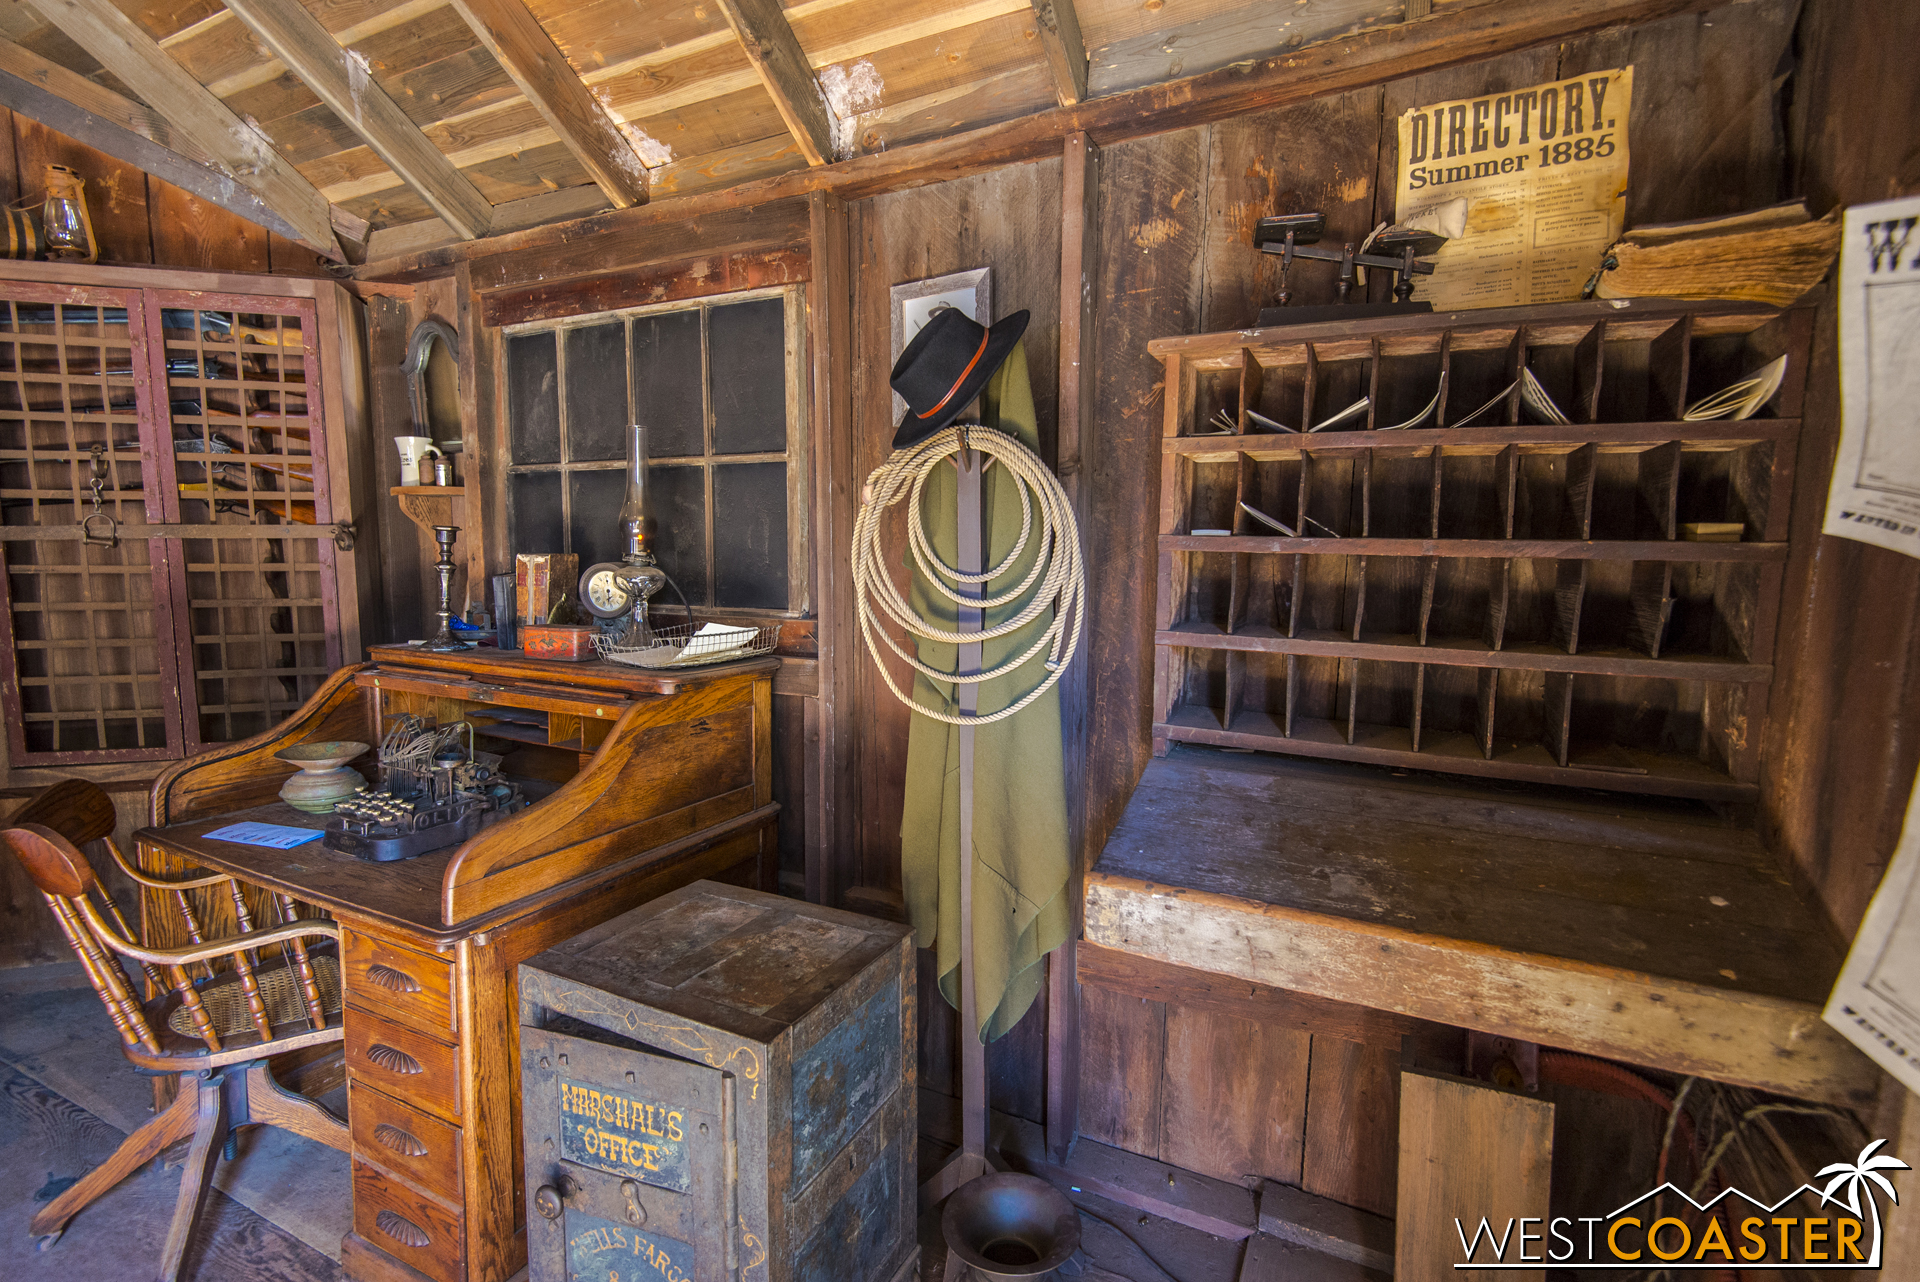 Inside, there are plenty of authentic props and furnishings to inspect.